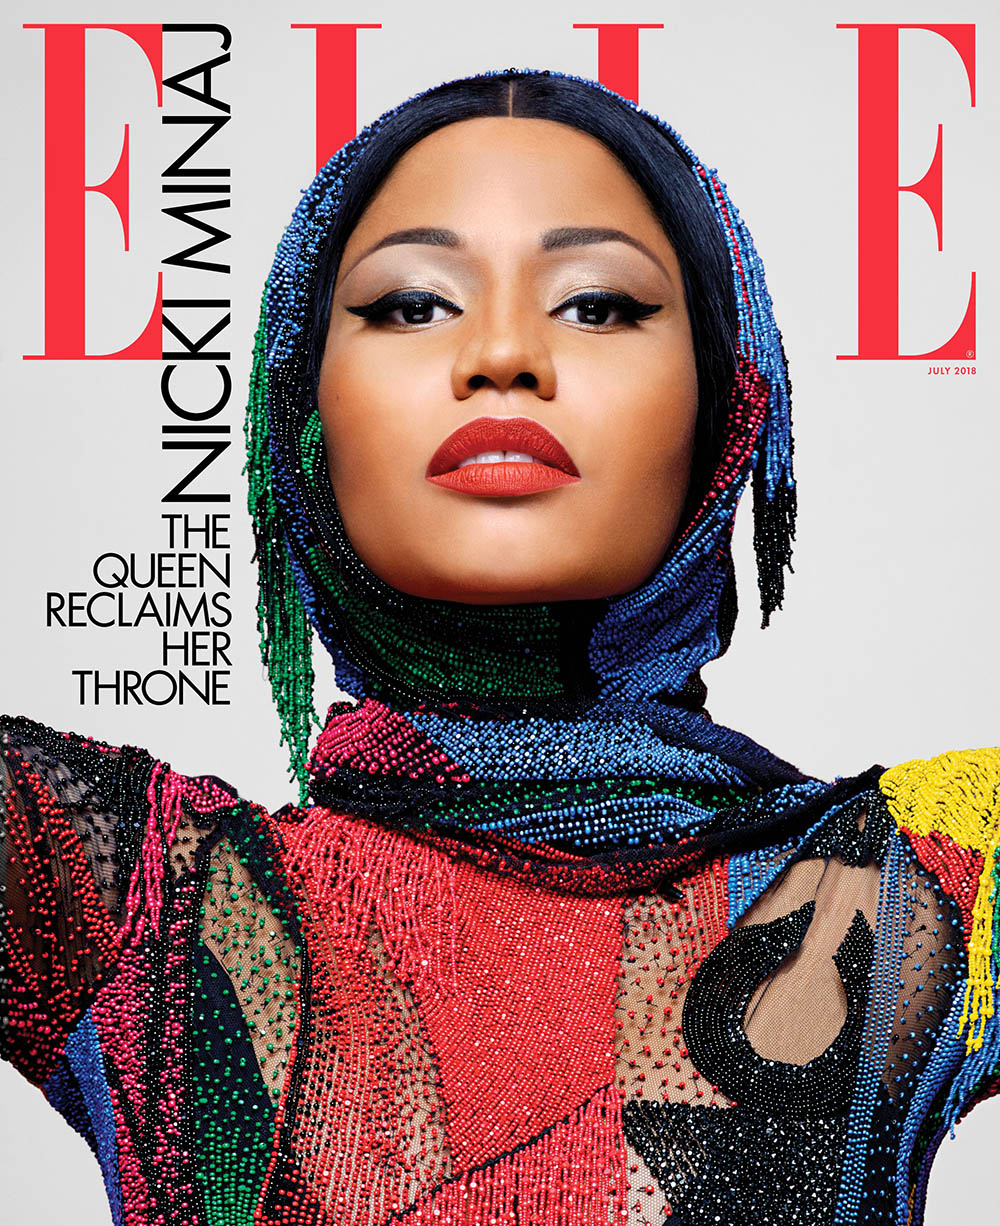 Nicki Minaj covers Elle US July 2018 by Karl Lagerfeld